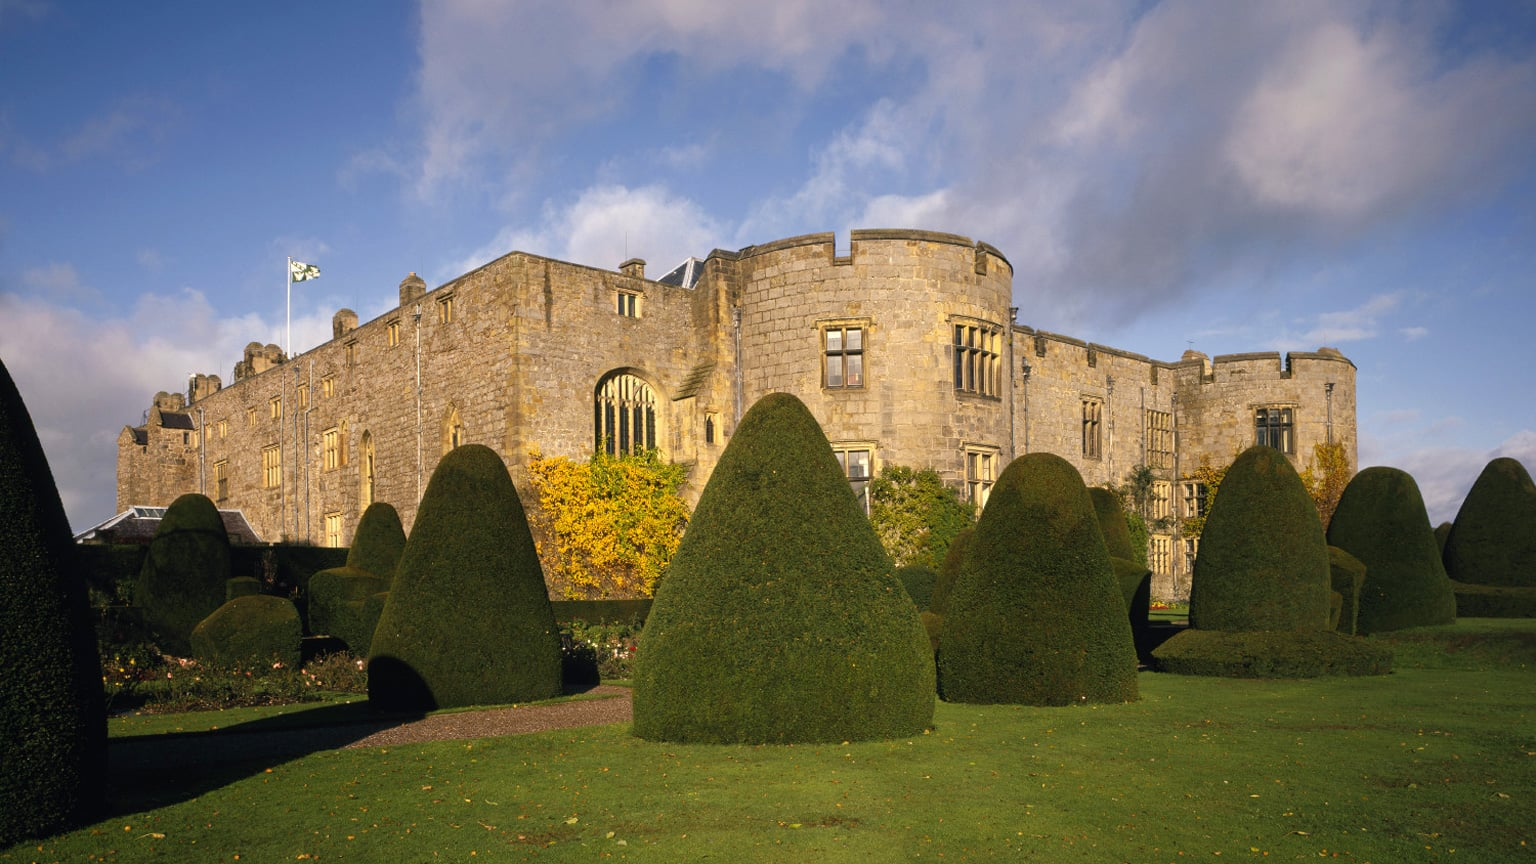 10. Chirk Castle - Free with National Art Pass